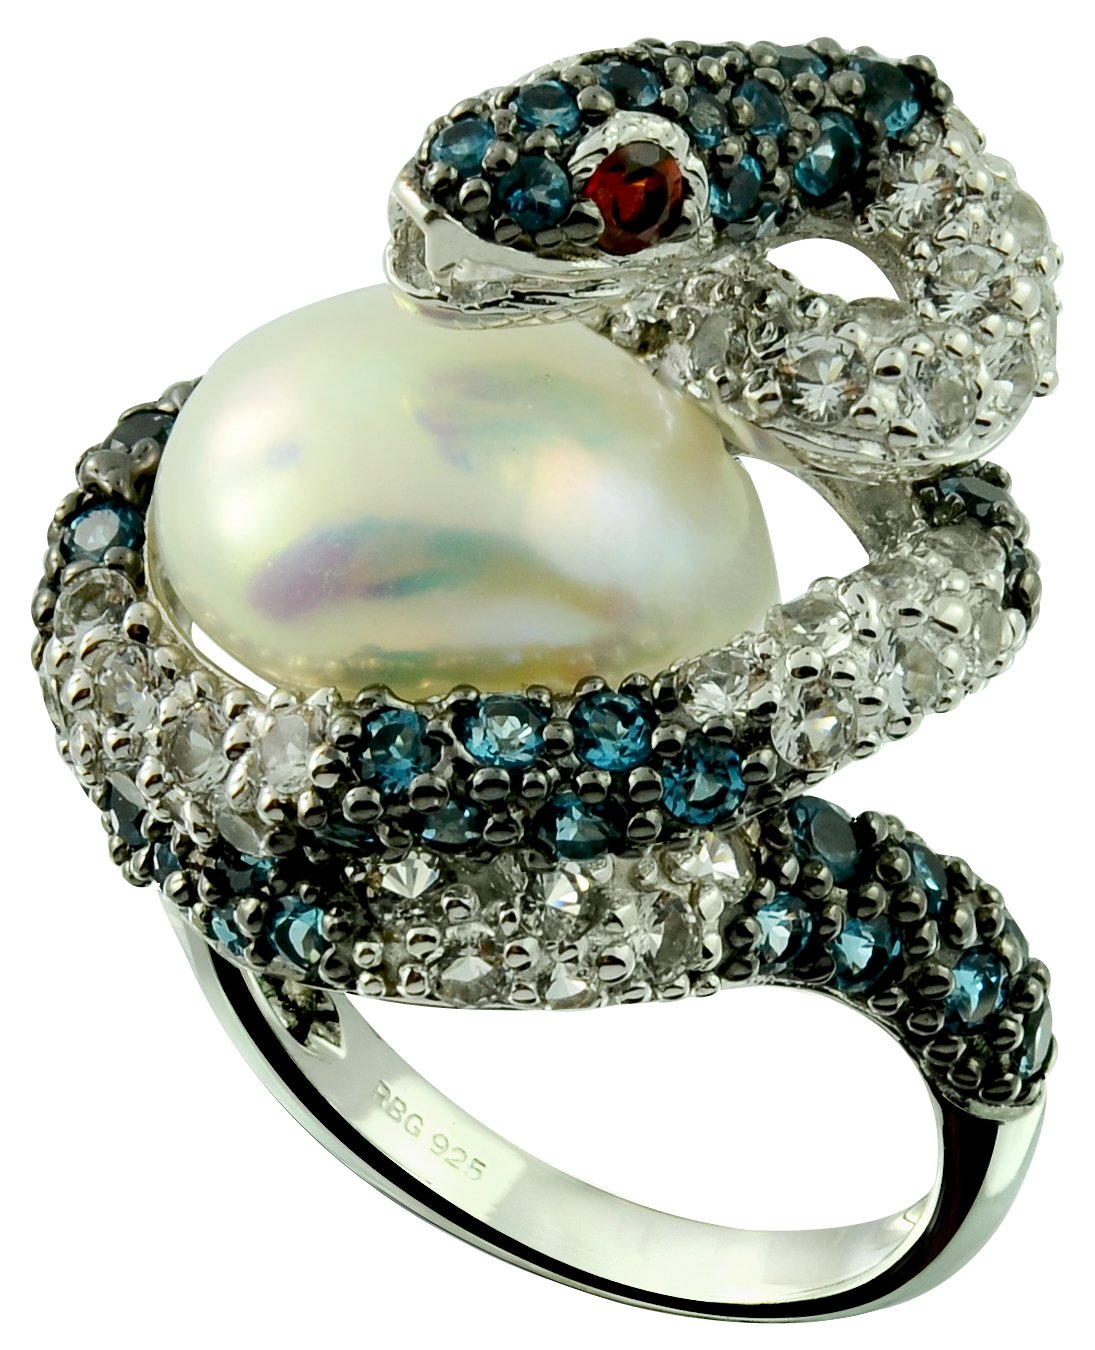 13.41 Cts Freshwater Cultured Pearl with London Blue Topaz Rhodium-Plated 925 Sterling Silver Snake Ring (9)